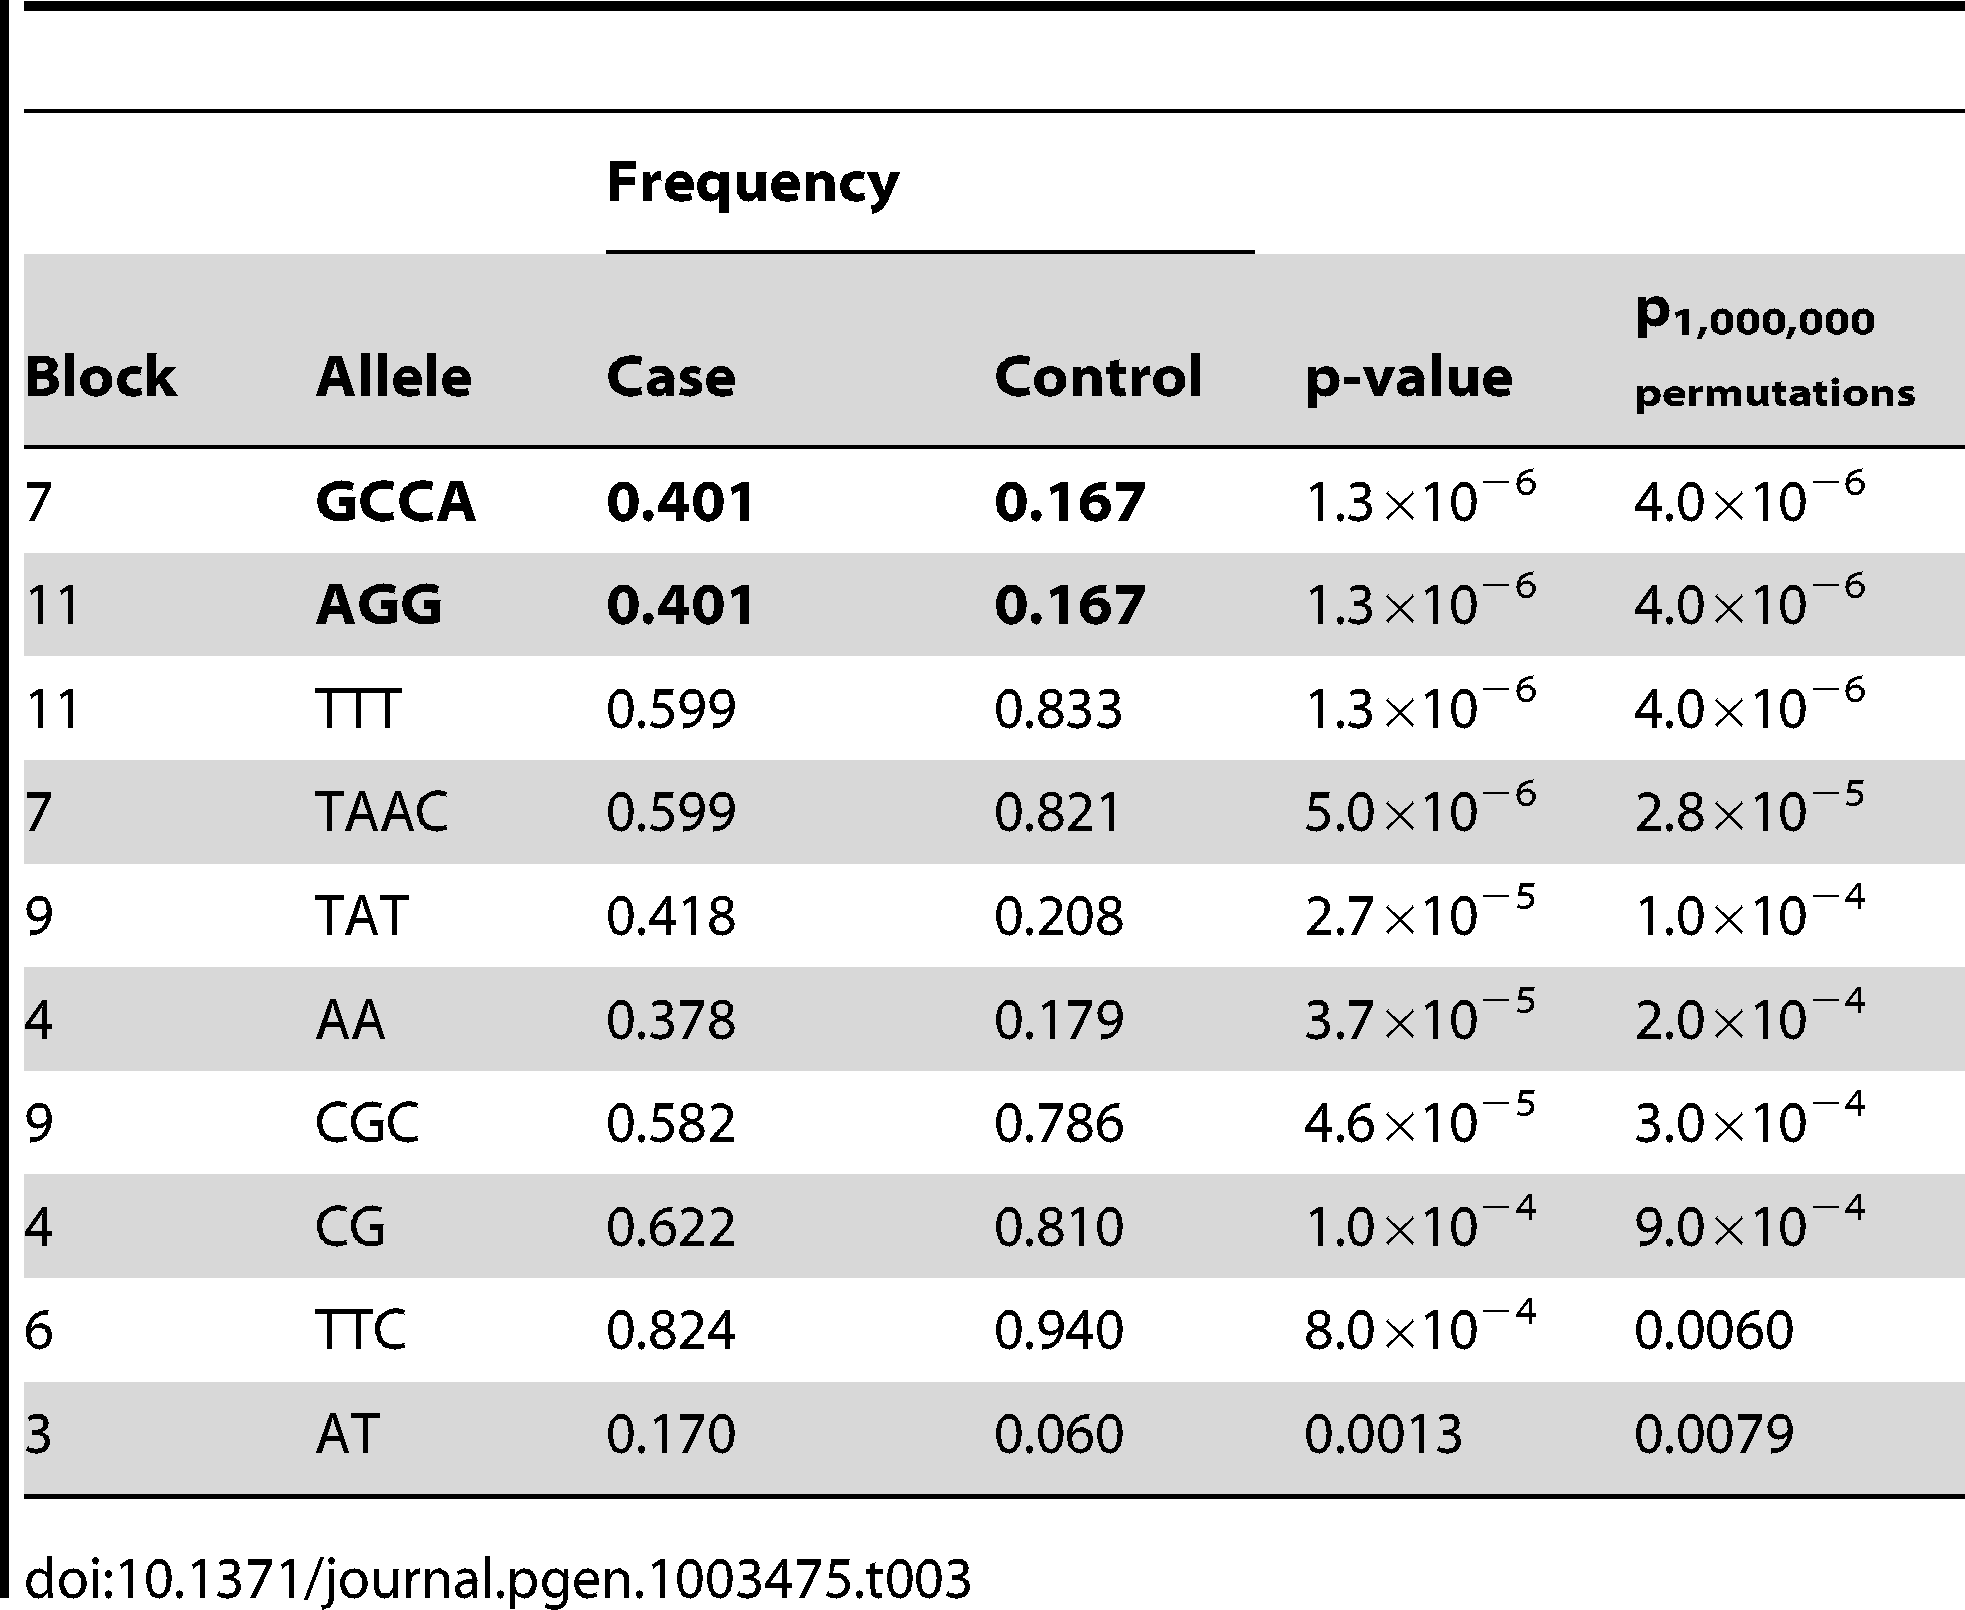 Top 10 haplotype alleles from the association analysis of fine-mapping data.